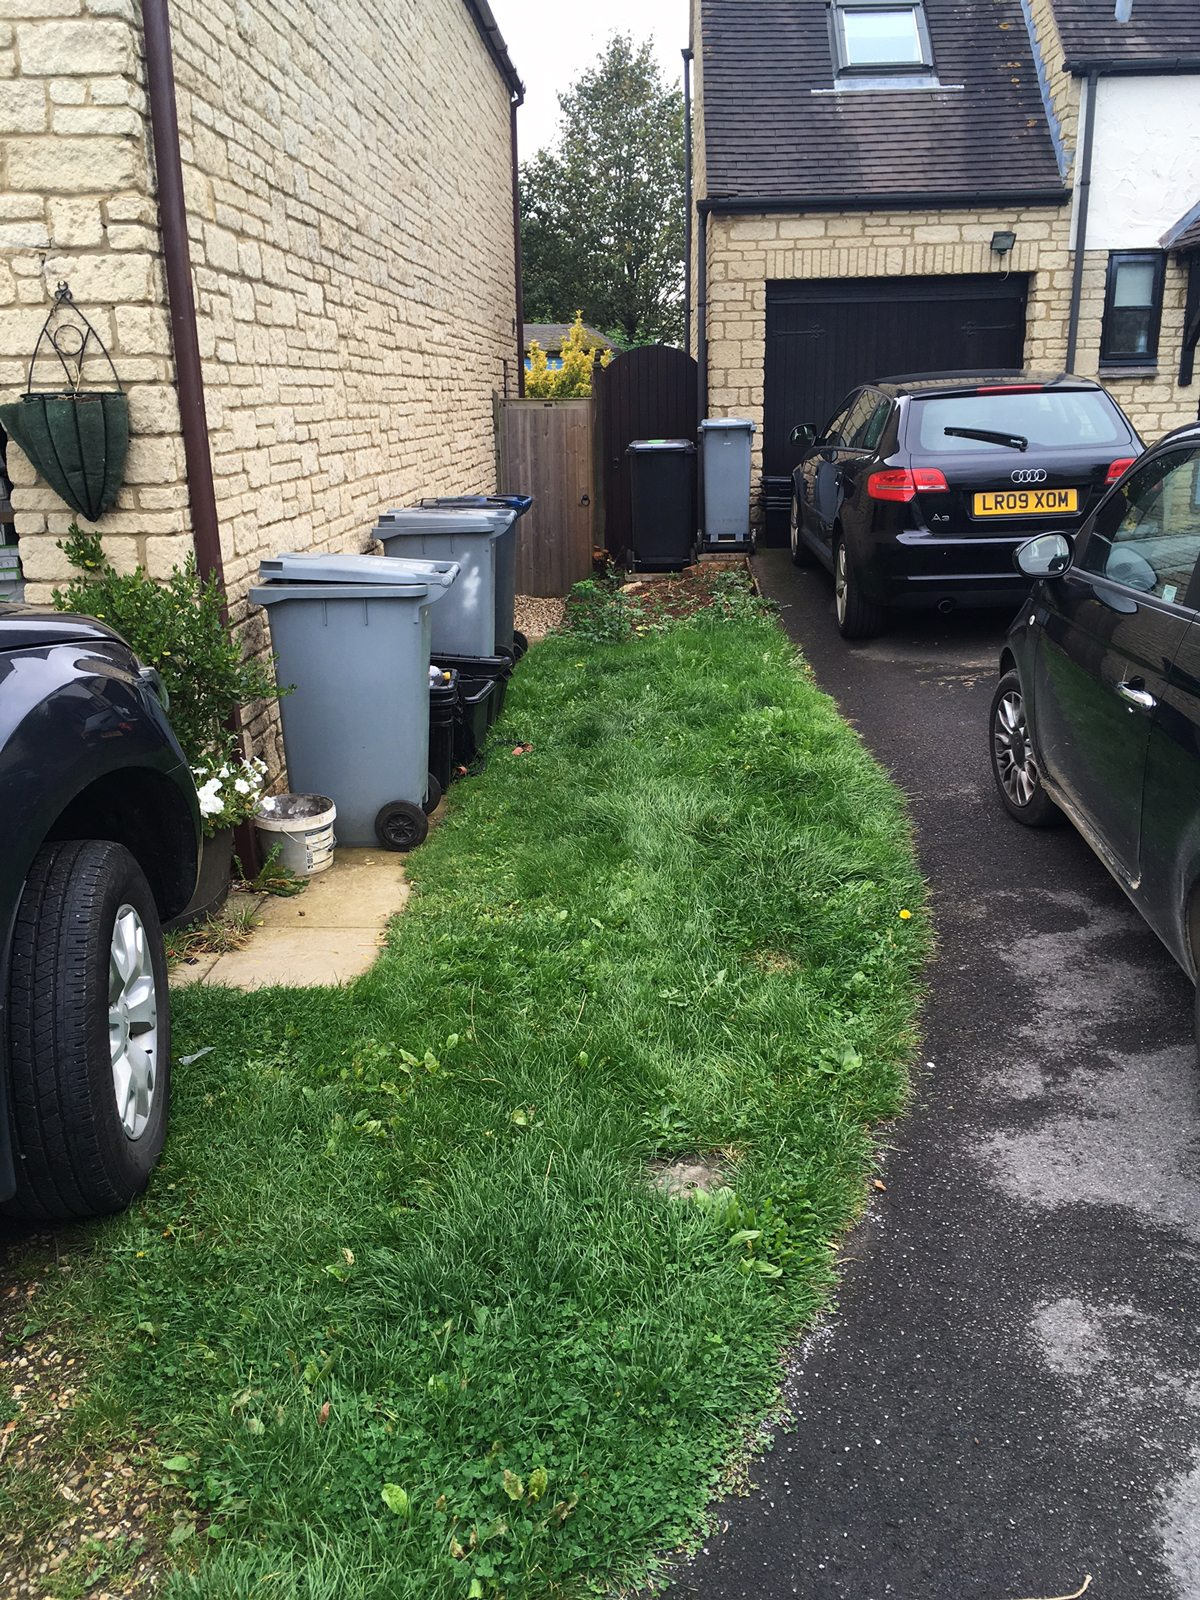 Gravel Driveway, New Driveways Oxford New Driveways Reading New Driveways Swindon New Driveways Newbury New Driveways Peterborough New Driveways Cardiff New Driveways North London New Driveways South London New Driveways Chiswick New Driveway High Wycombe